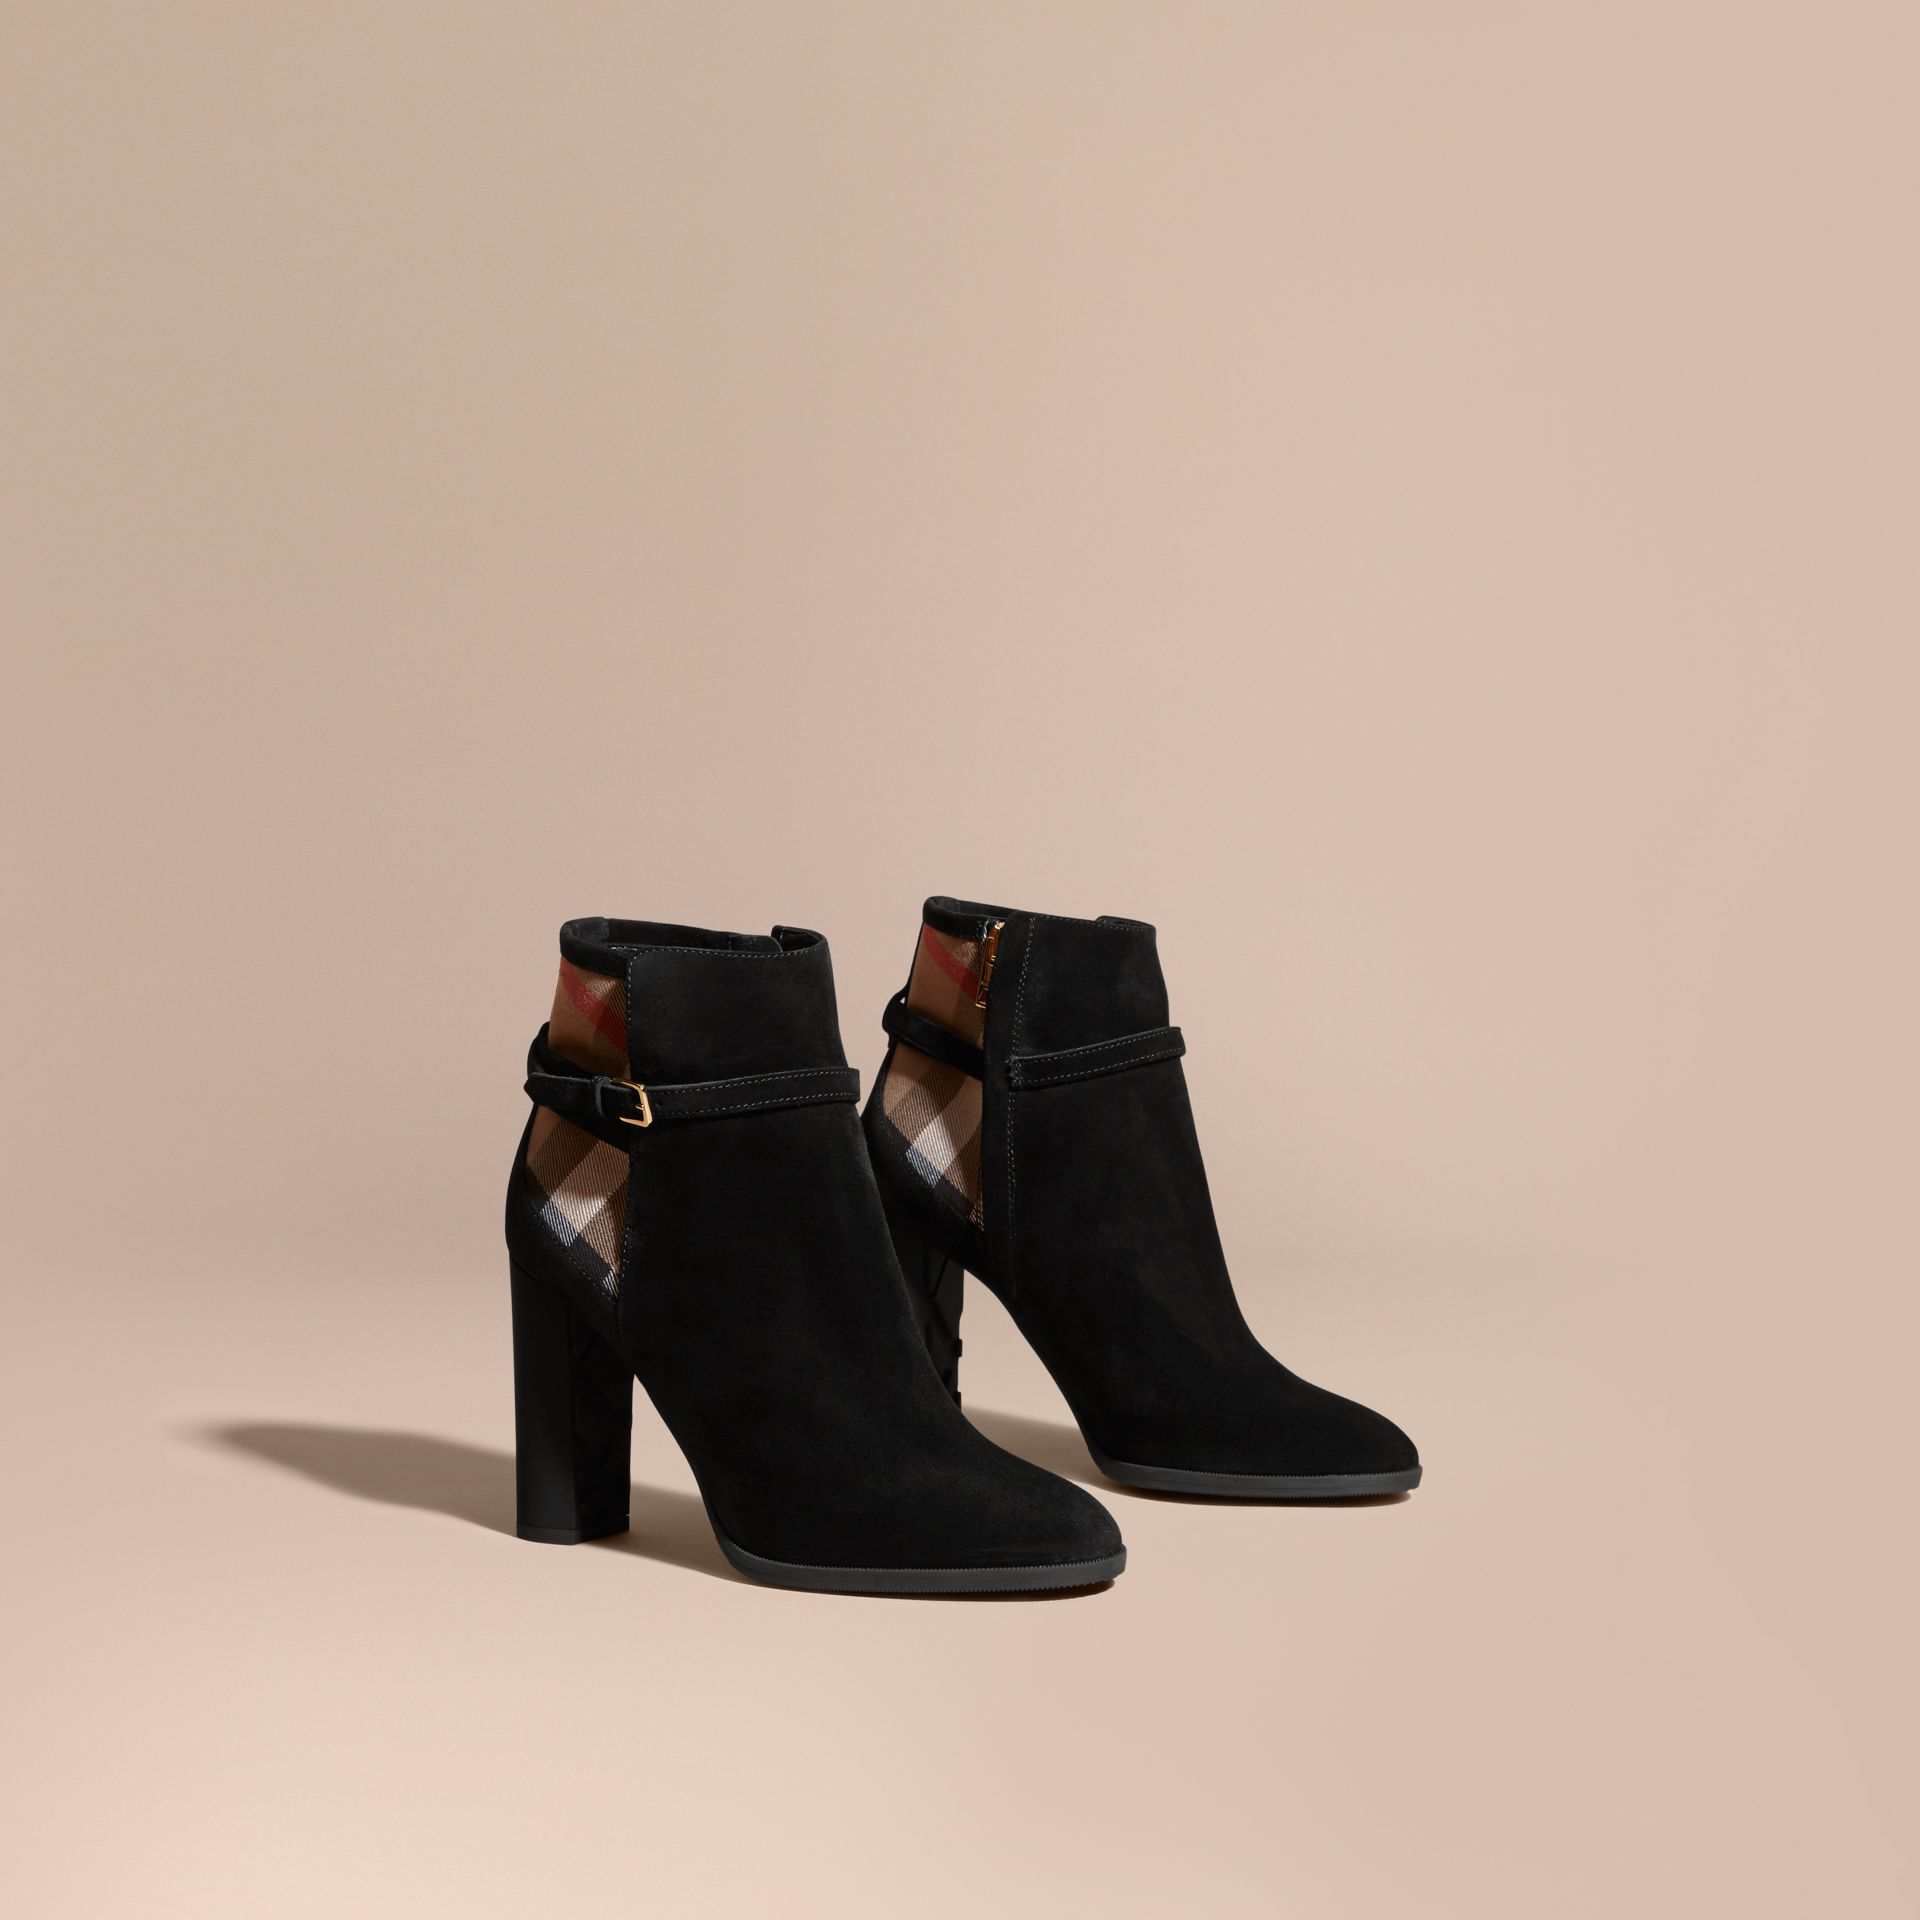 Noir Bottines en cuir velours avec motif House check - photo de la galerie 1